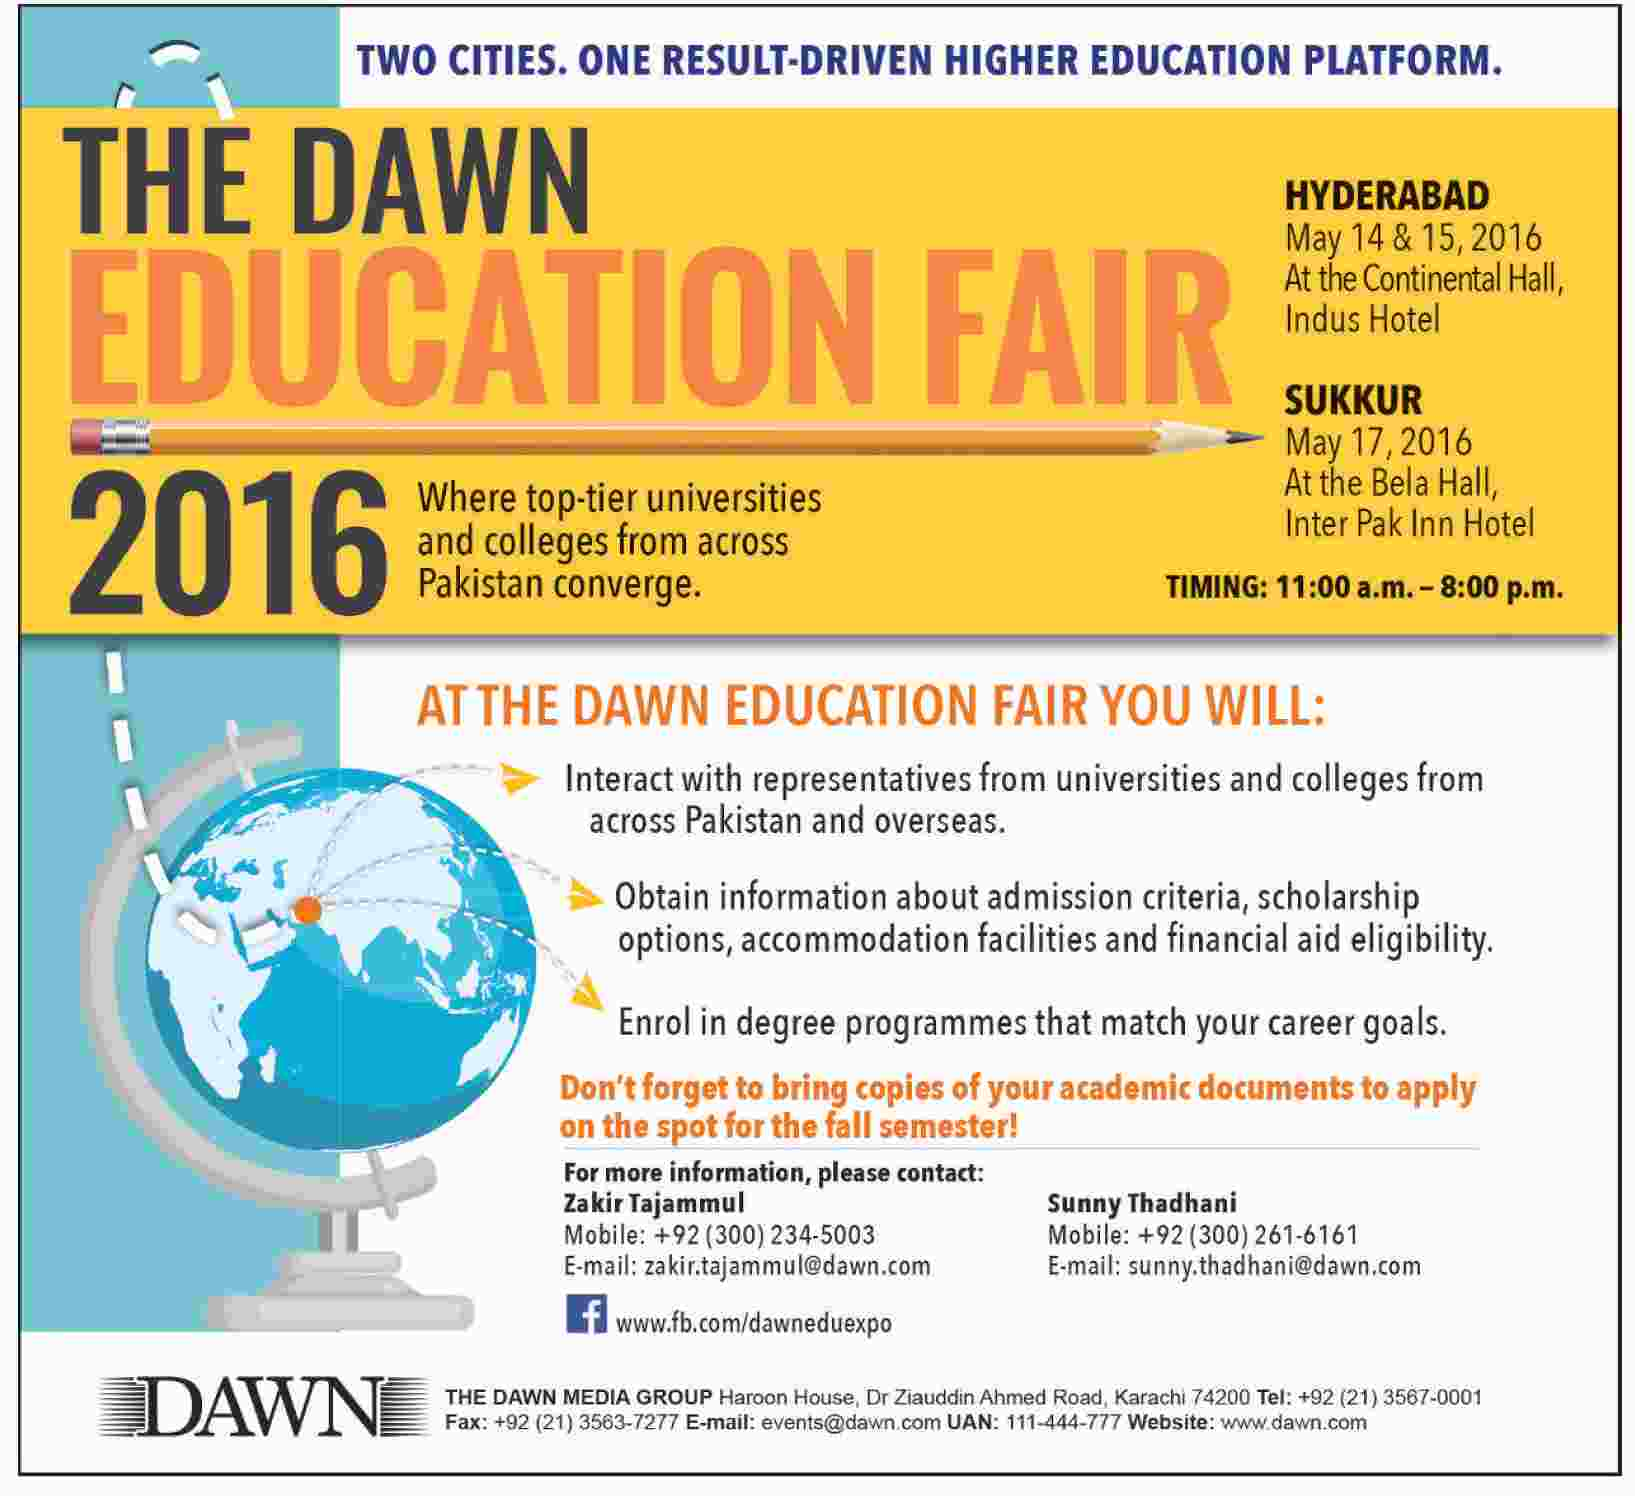 DAWN Education Fair 2016